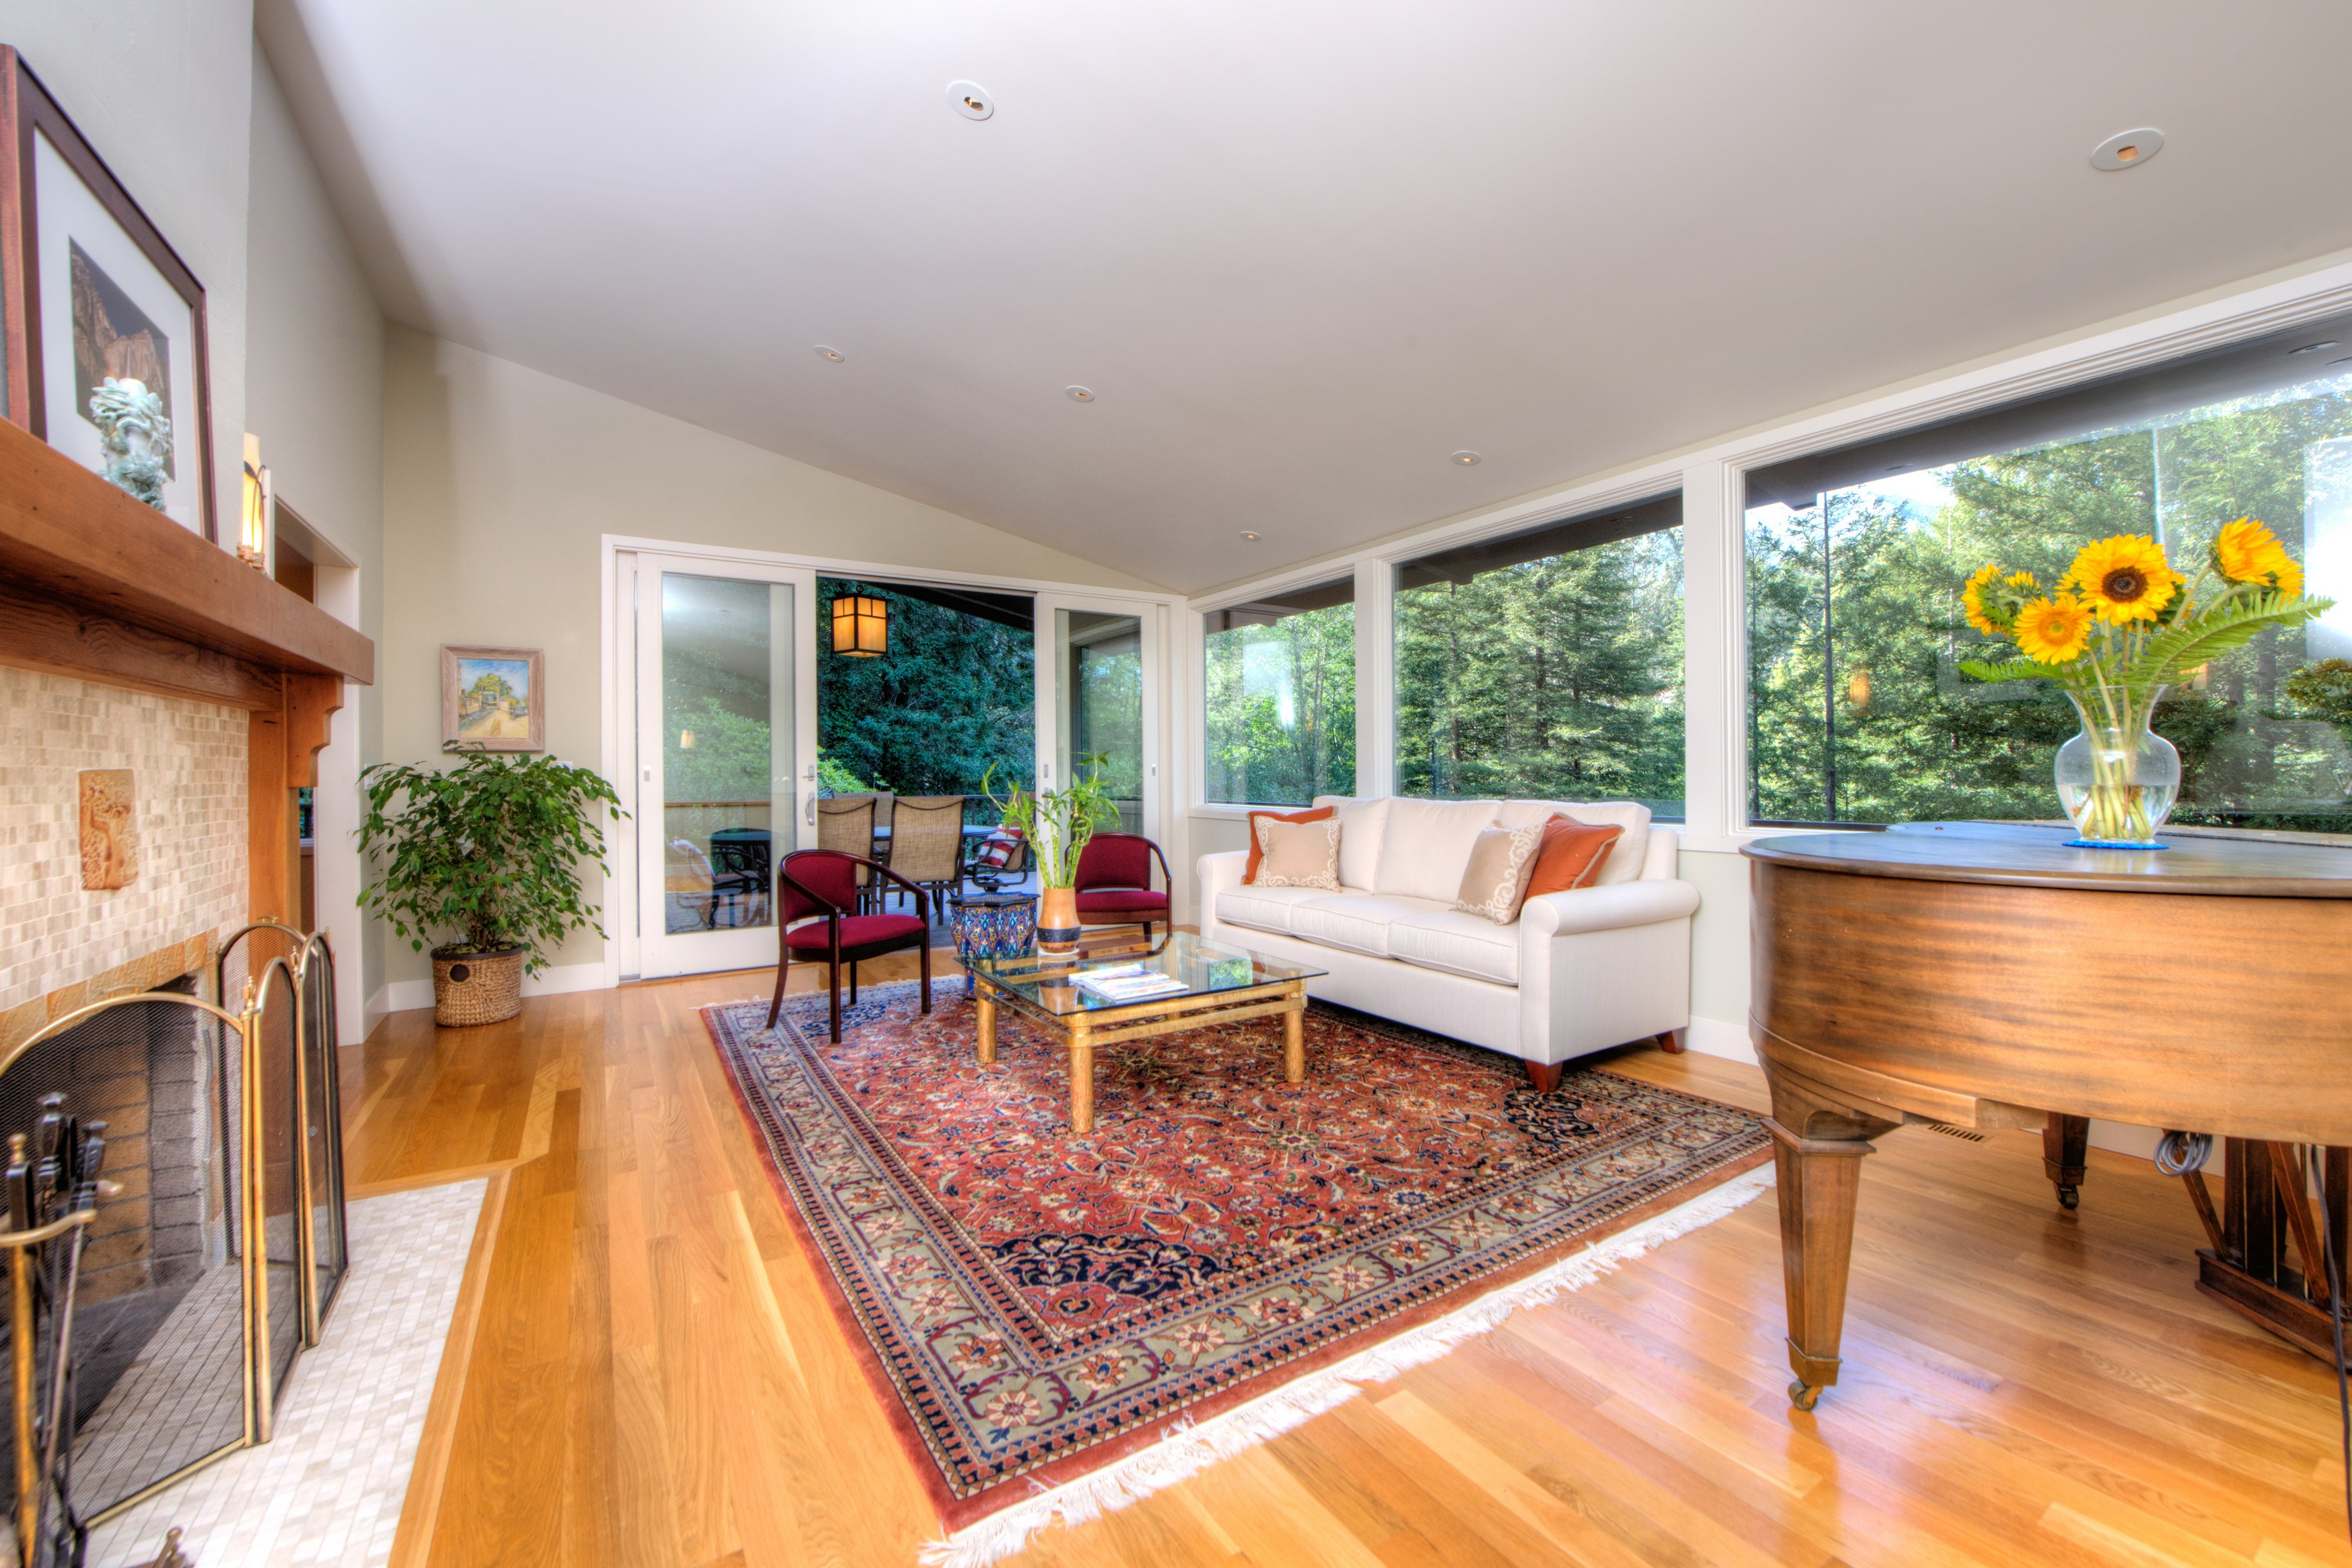 Single Family Home for Sale at Contemporary Gem on Large Lot 21 Monte Vista Avenue Mill Valley, California, 94941 United States